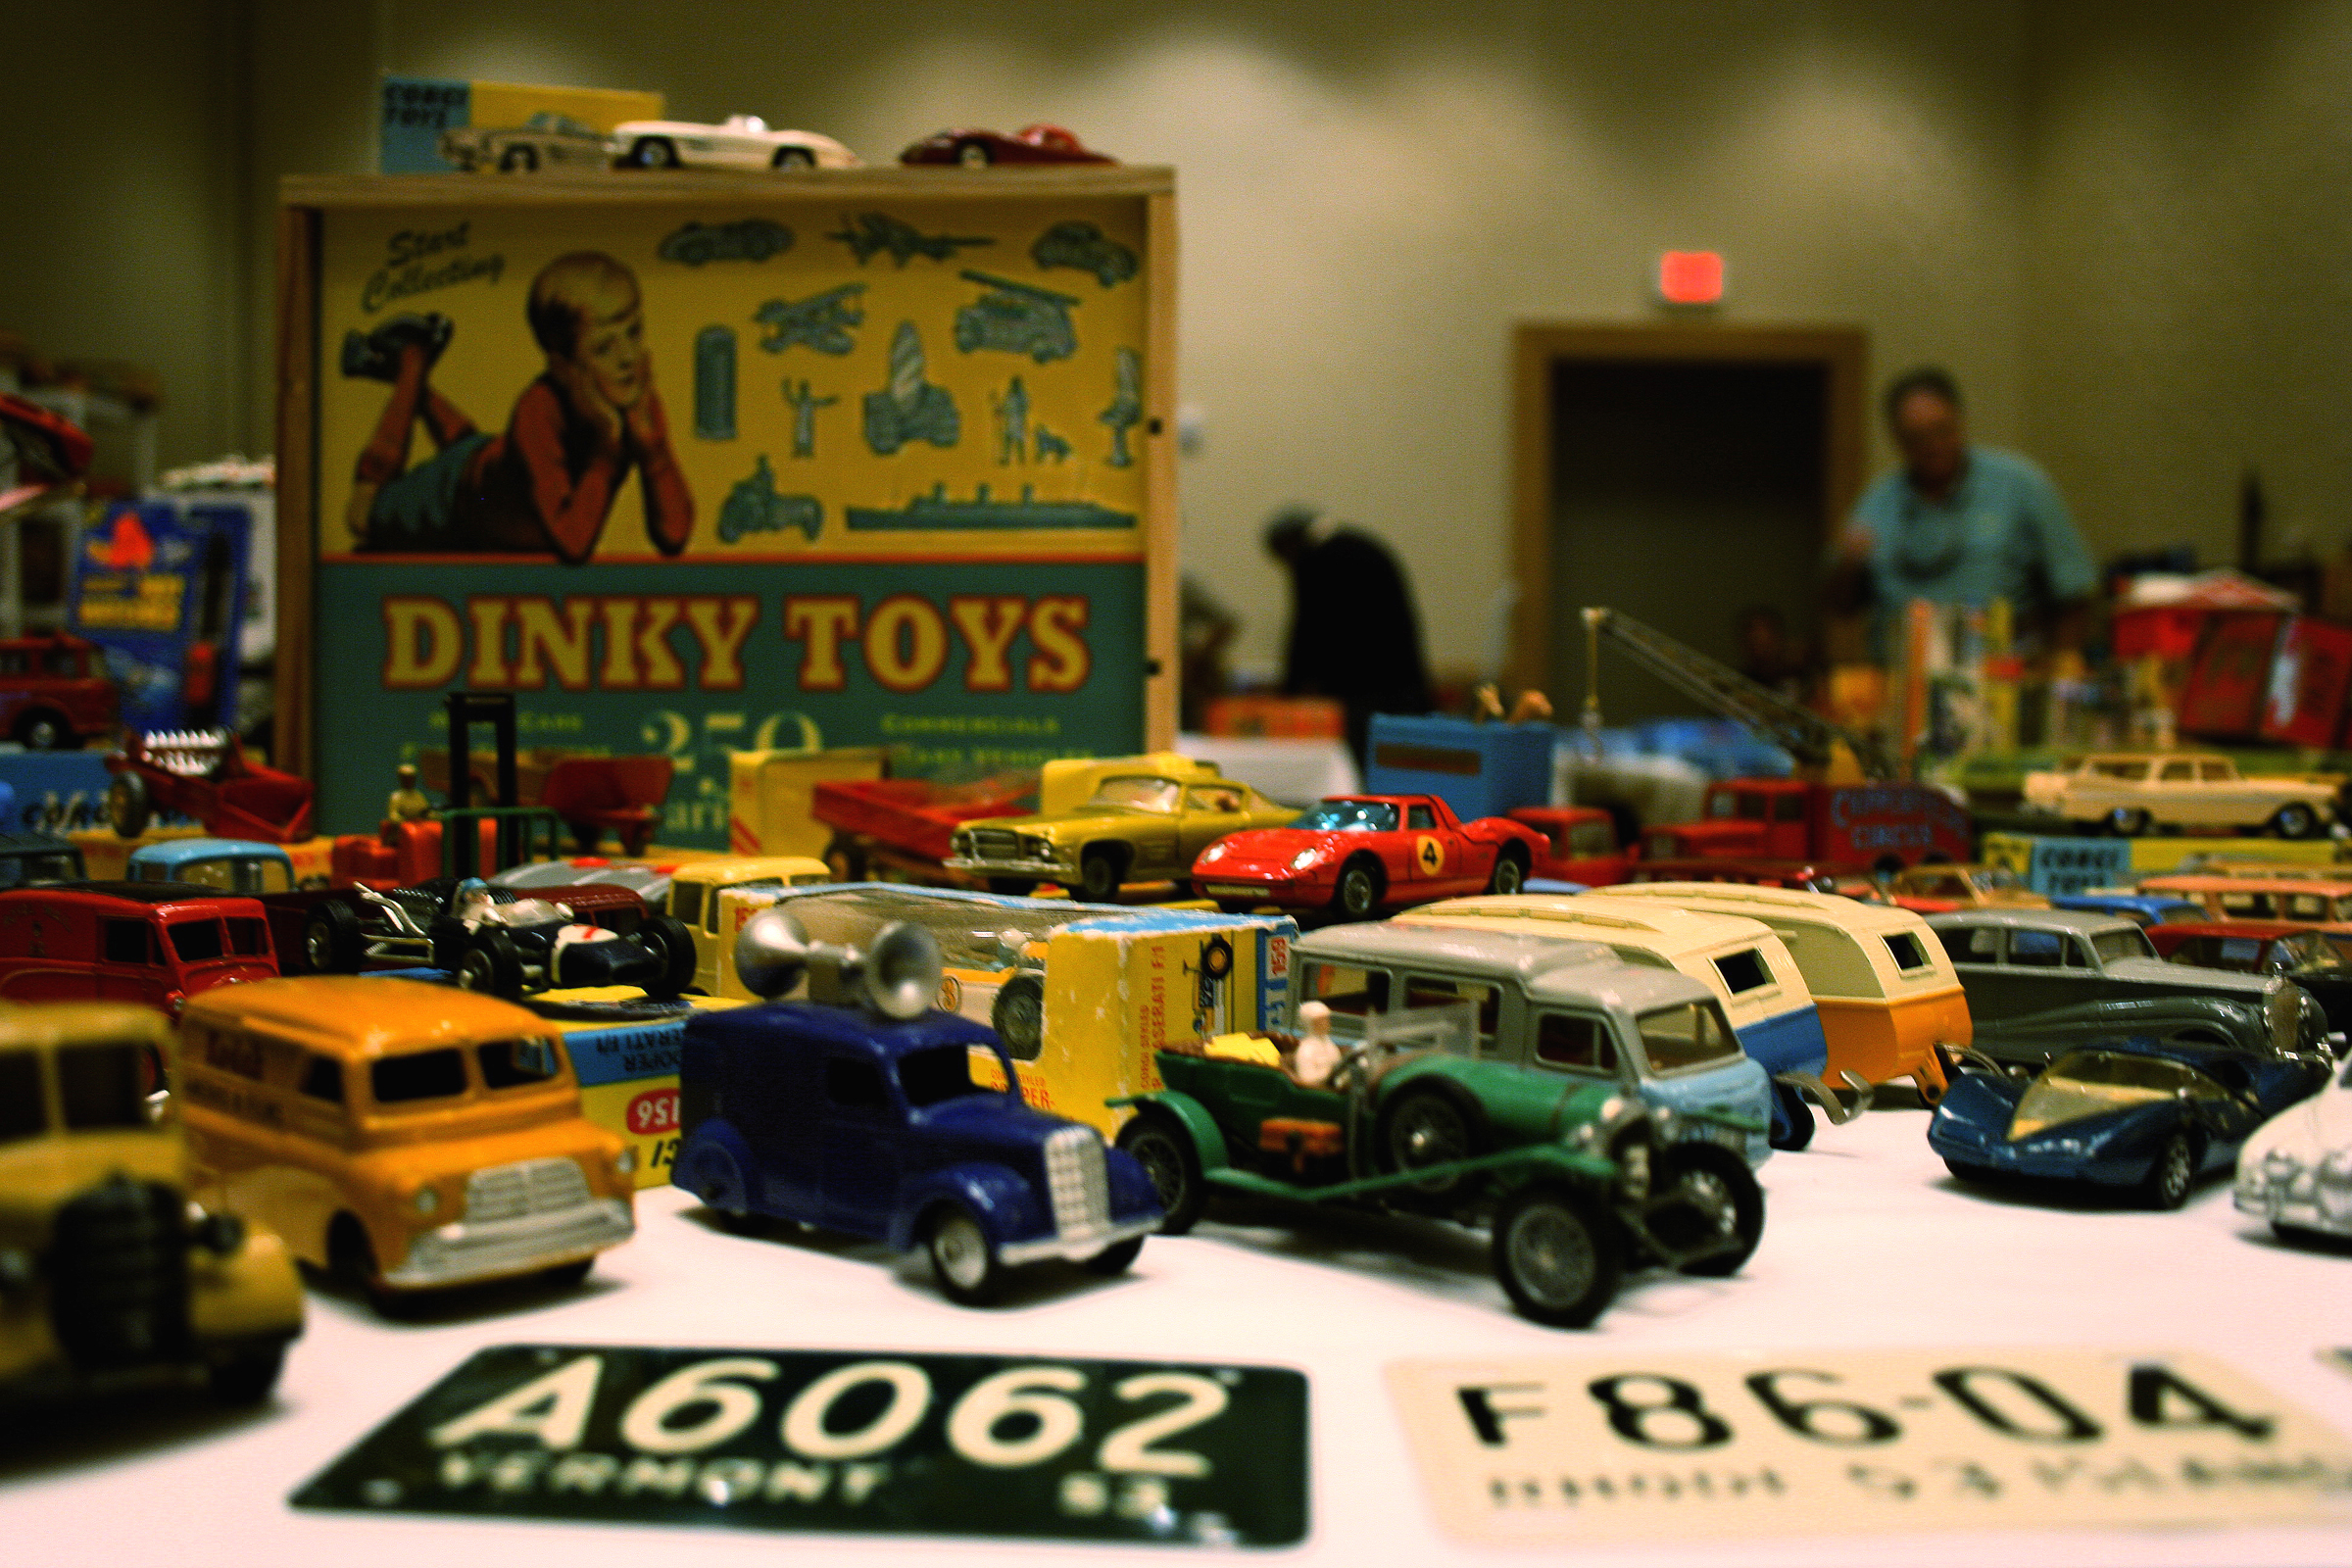 10 Strangely Interesting Pawn Shop Businesses That Make Money - 10. Antique Toys